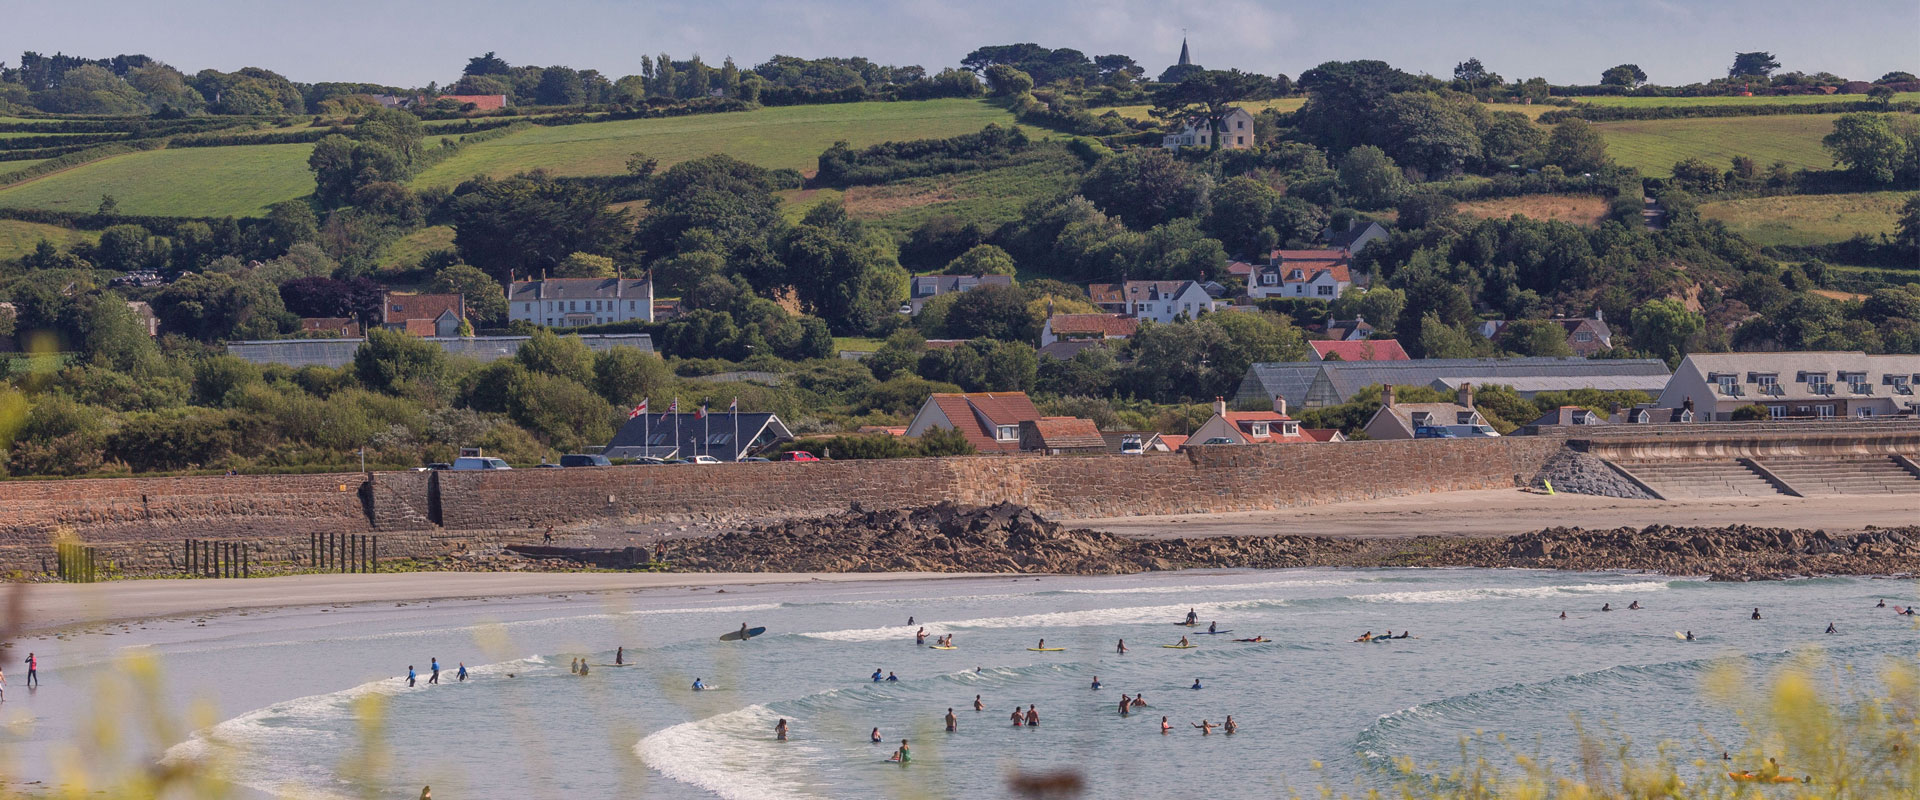 Vazon Bay - Images courtesy of VisitGuernsey